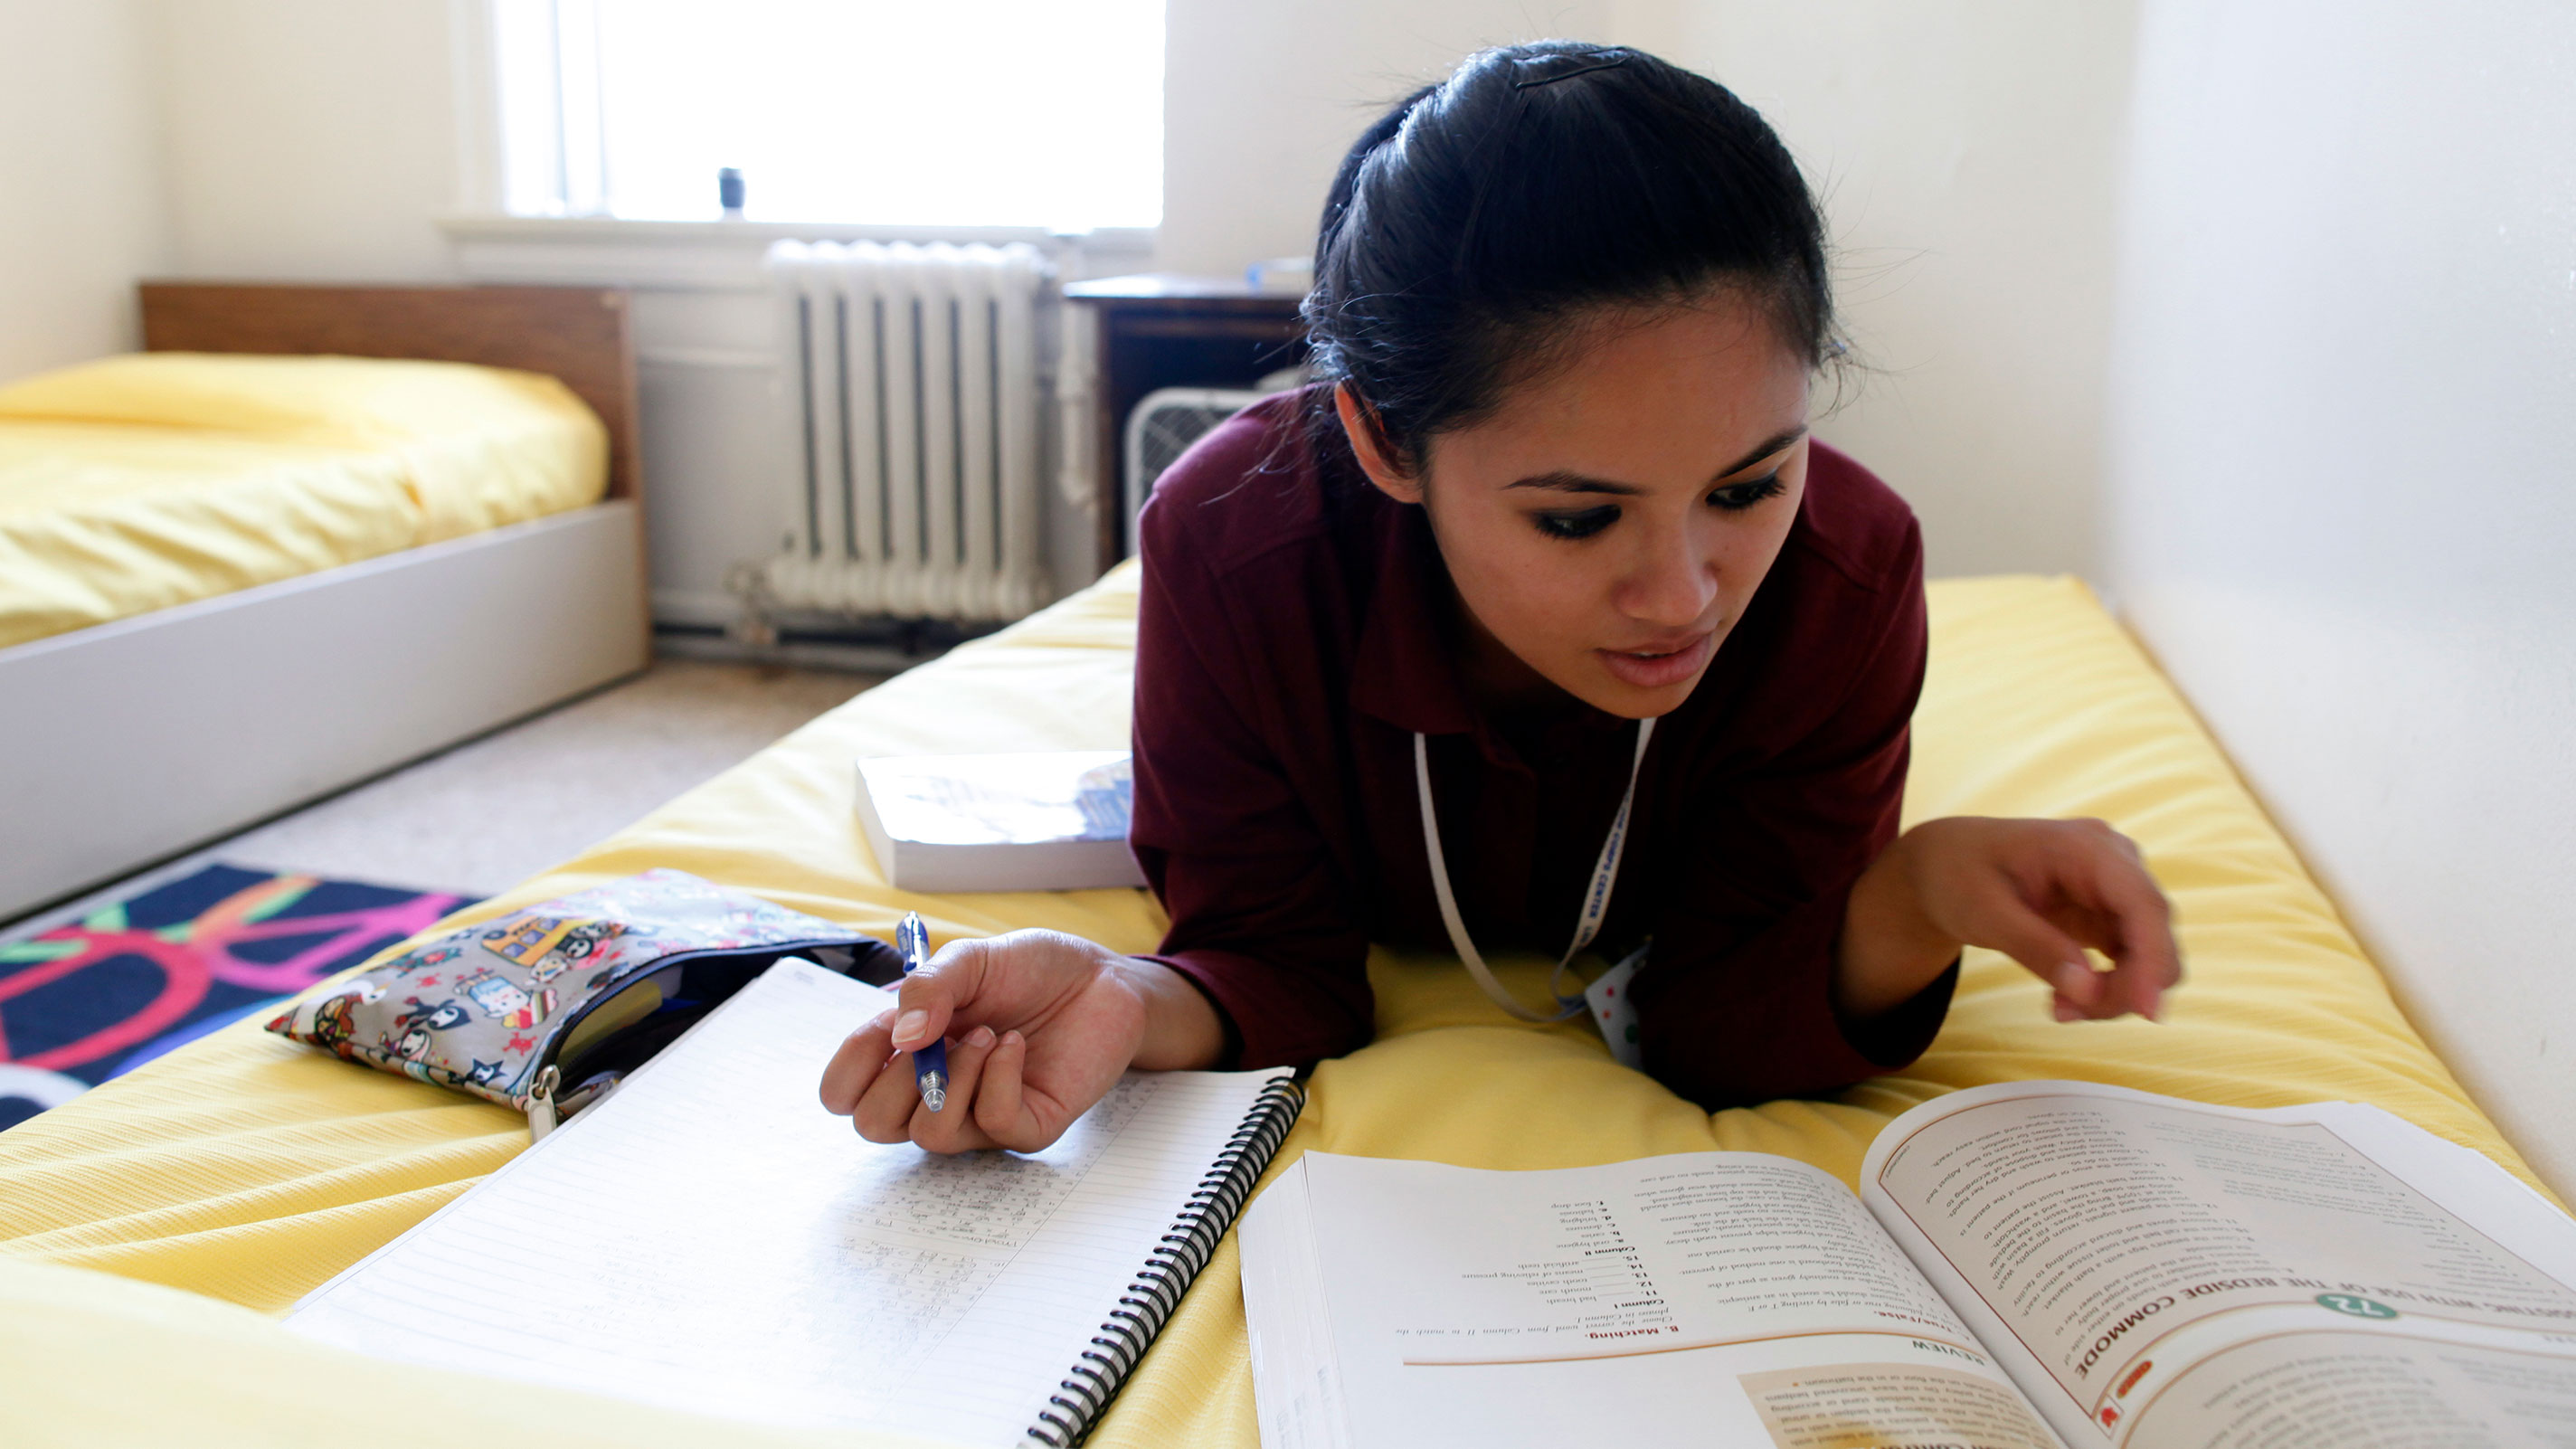 Young woman lies on dorm bed studying from a text book